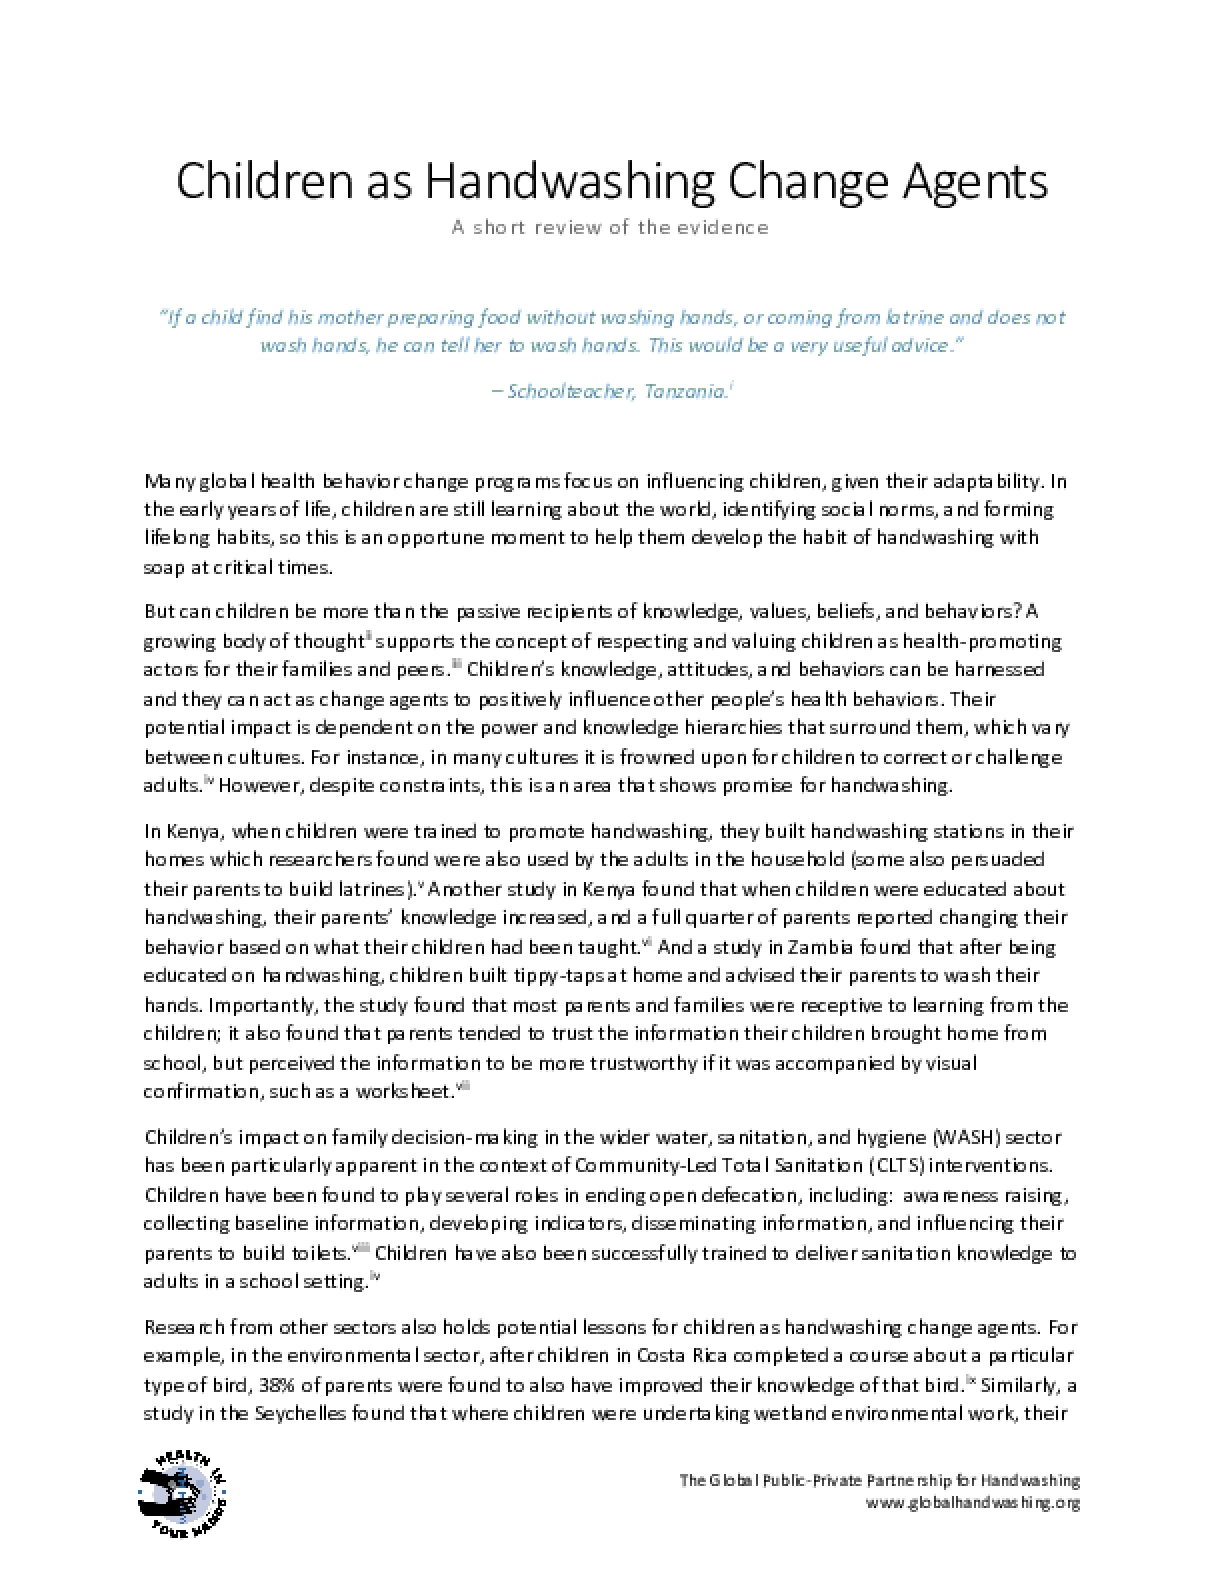 Children as Handwashing Change Agents: A short review of the evidence